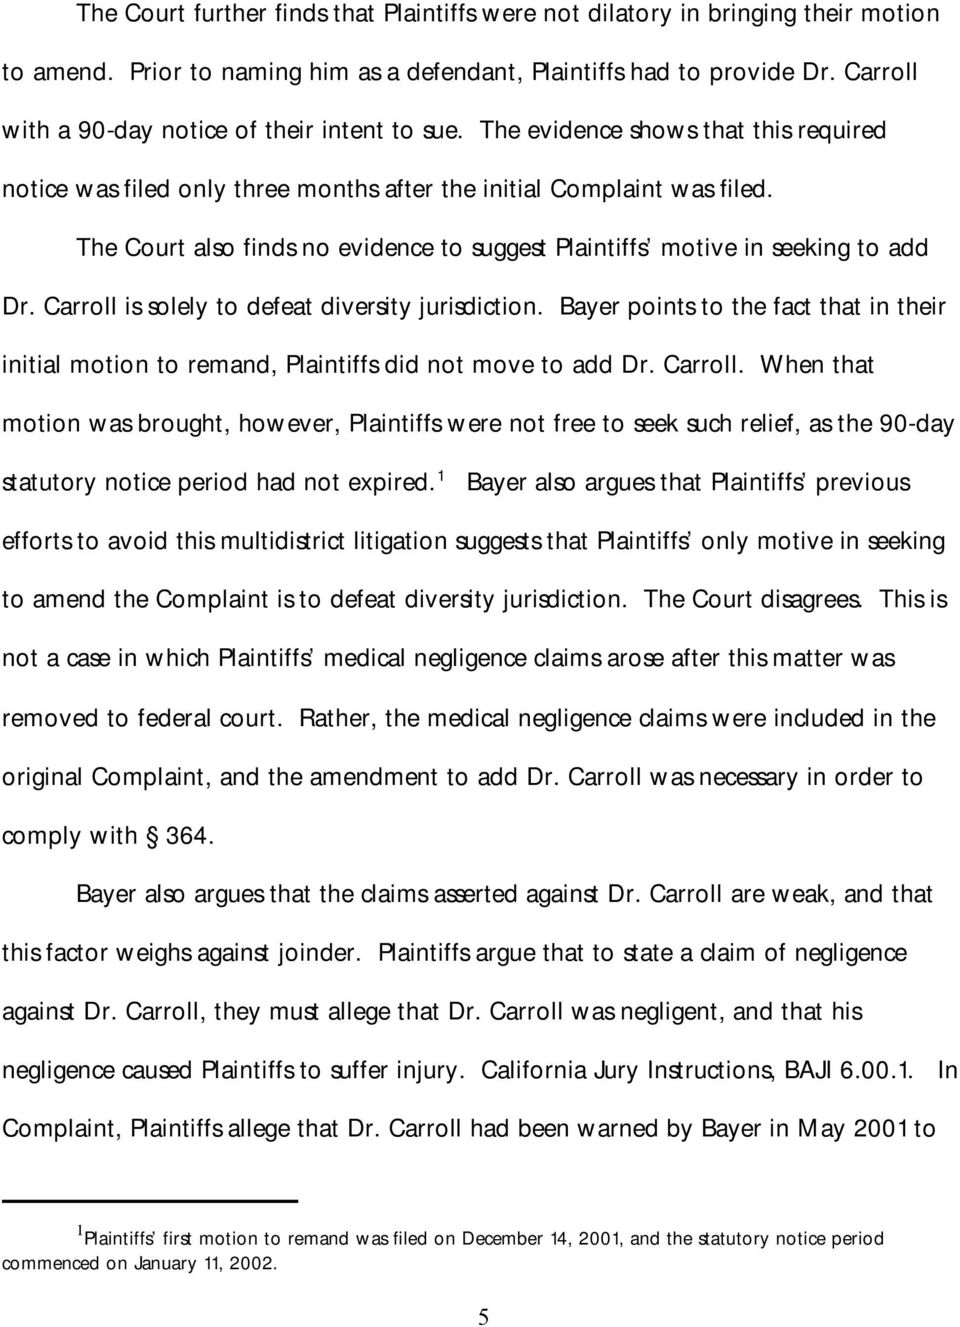 The Court also finds no evidence to suggest Plaintiffs motive in seeking to add Dr. Carroll is solely to defeat diversity jurisdiction.